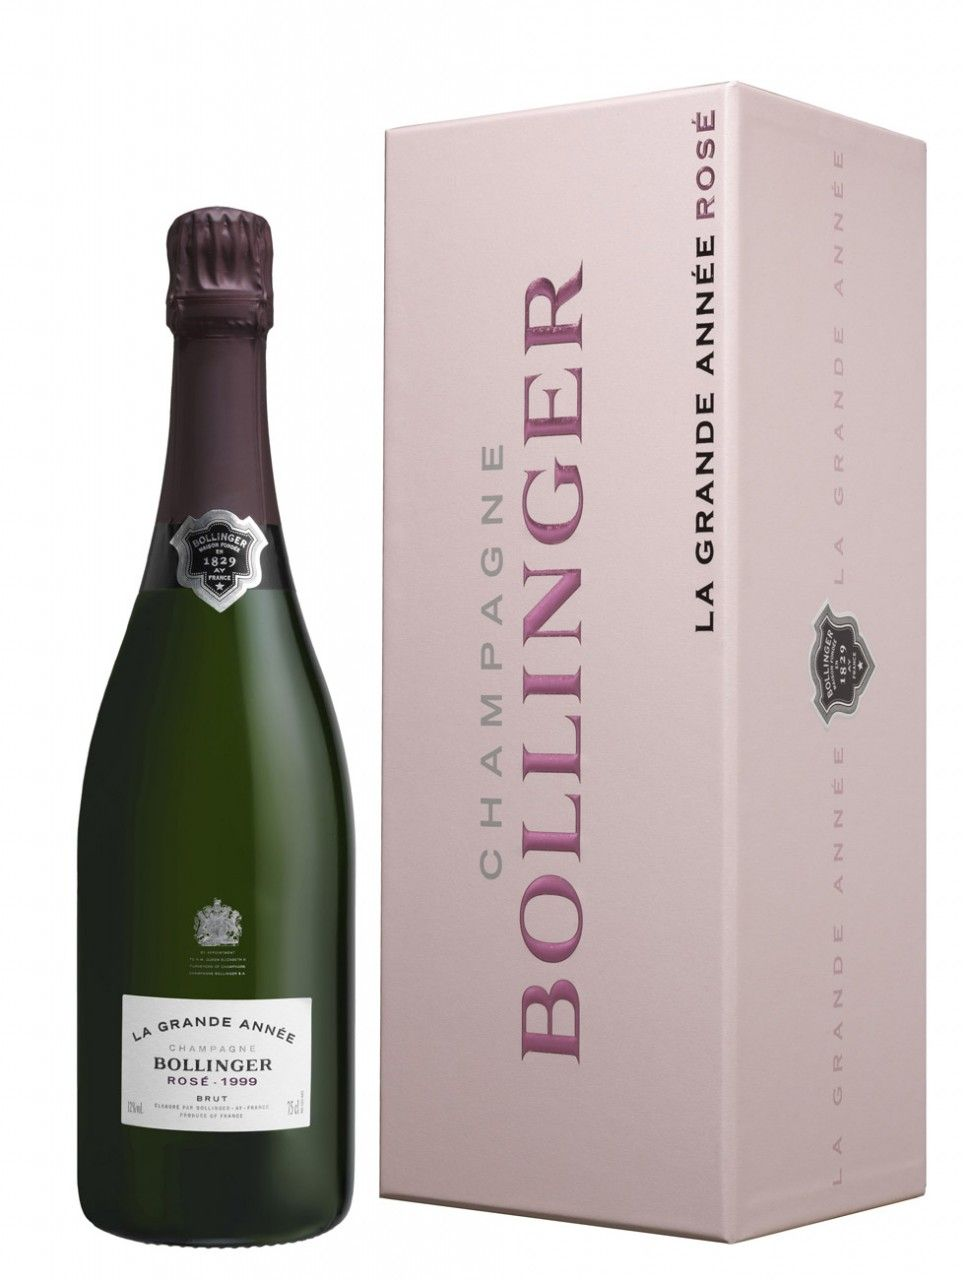 Bollinger Grande Annee Rose 1999...A voluptuous wine worthy of a decadent meal, try it with seared duck breast in cherry sauce, standing rib roast or a truffle risotto. Its fruit flavors and hint of spice also make it a welcome partner to holiday desserts from berry torte to shortbread.